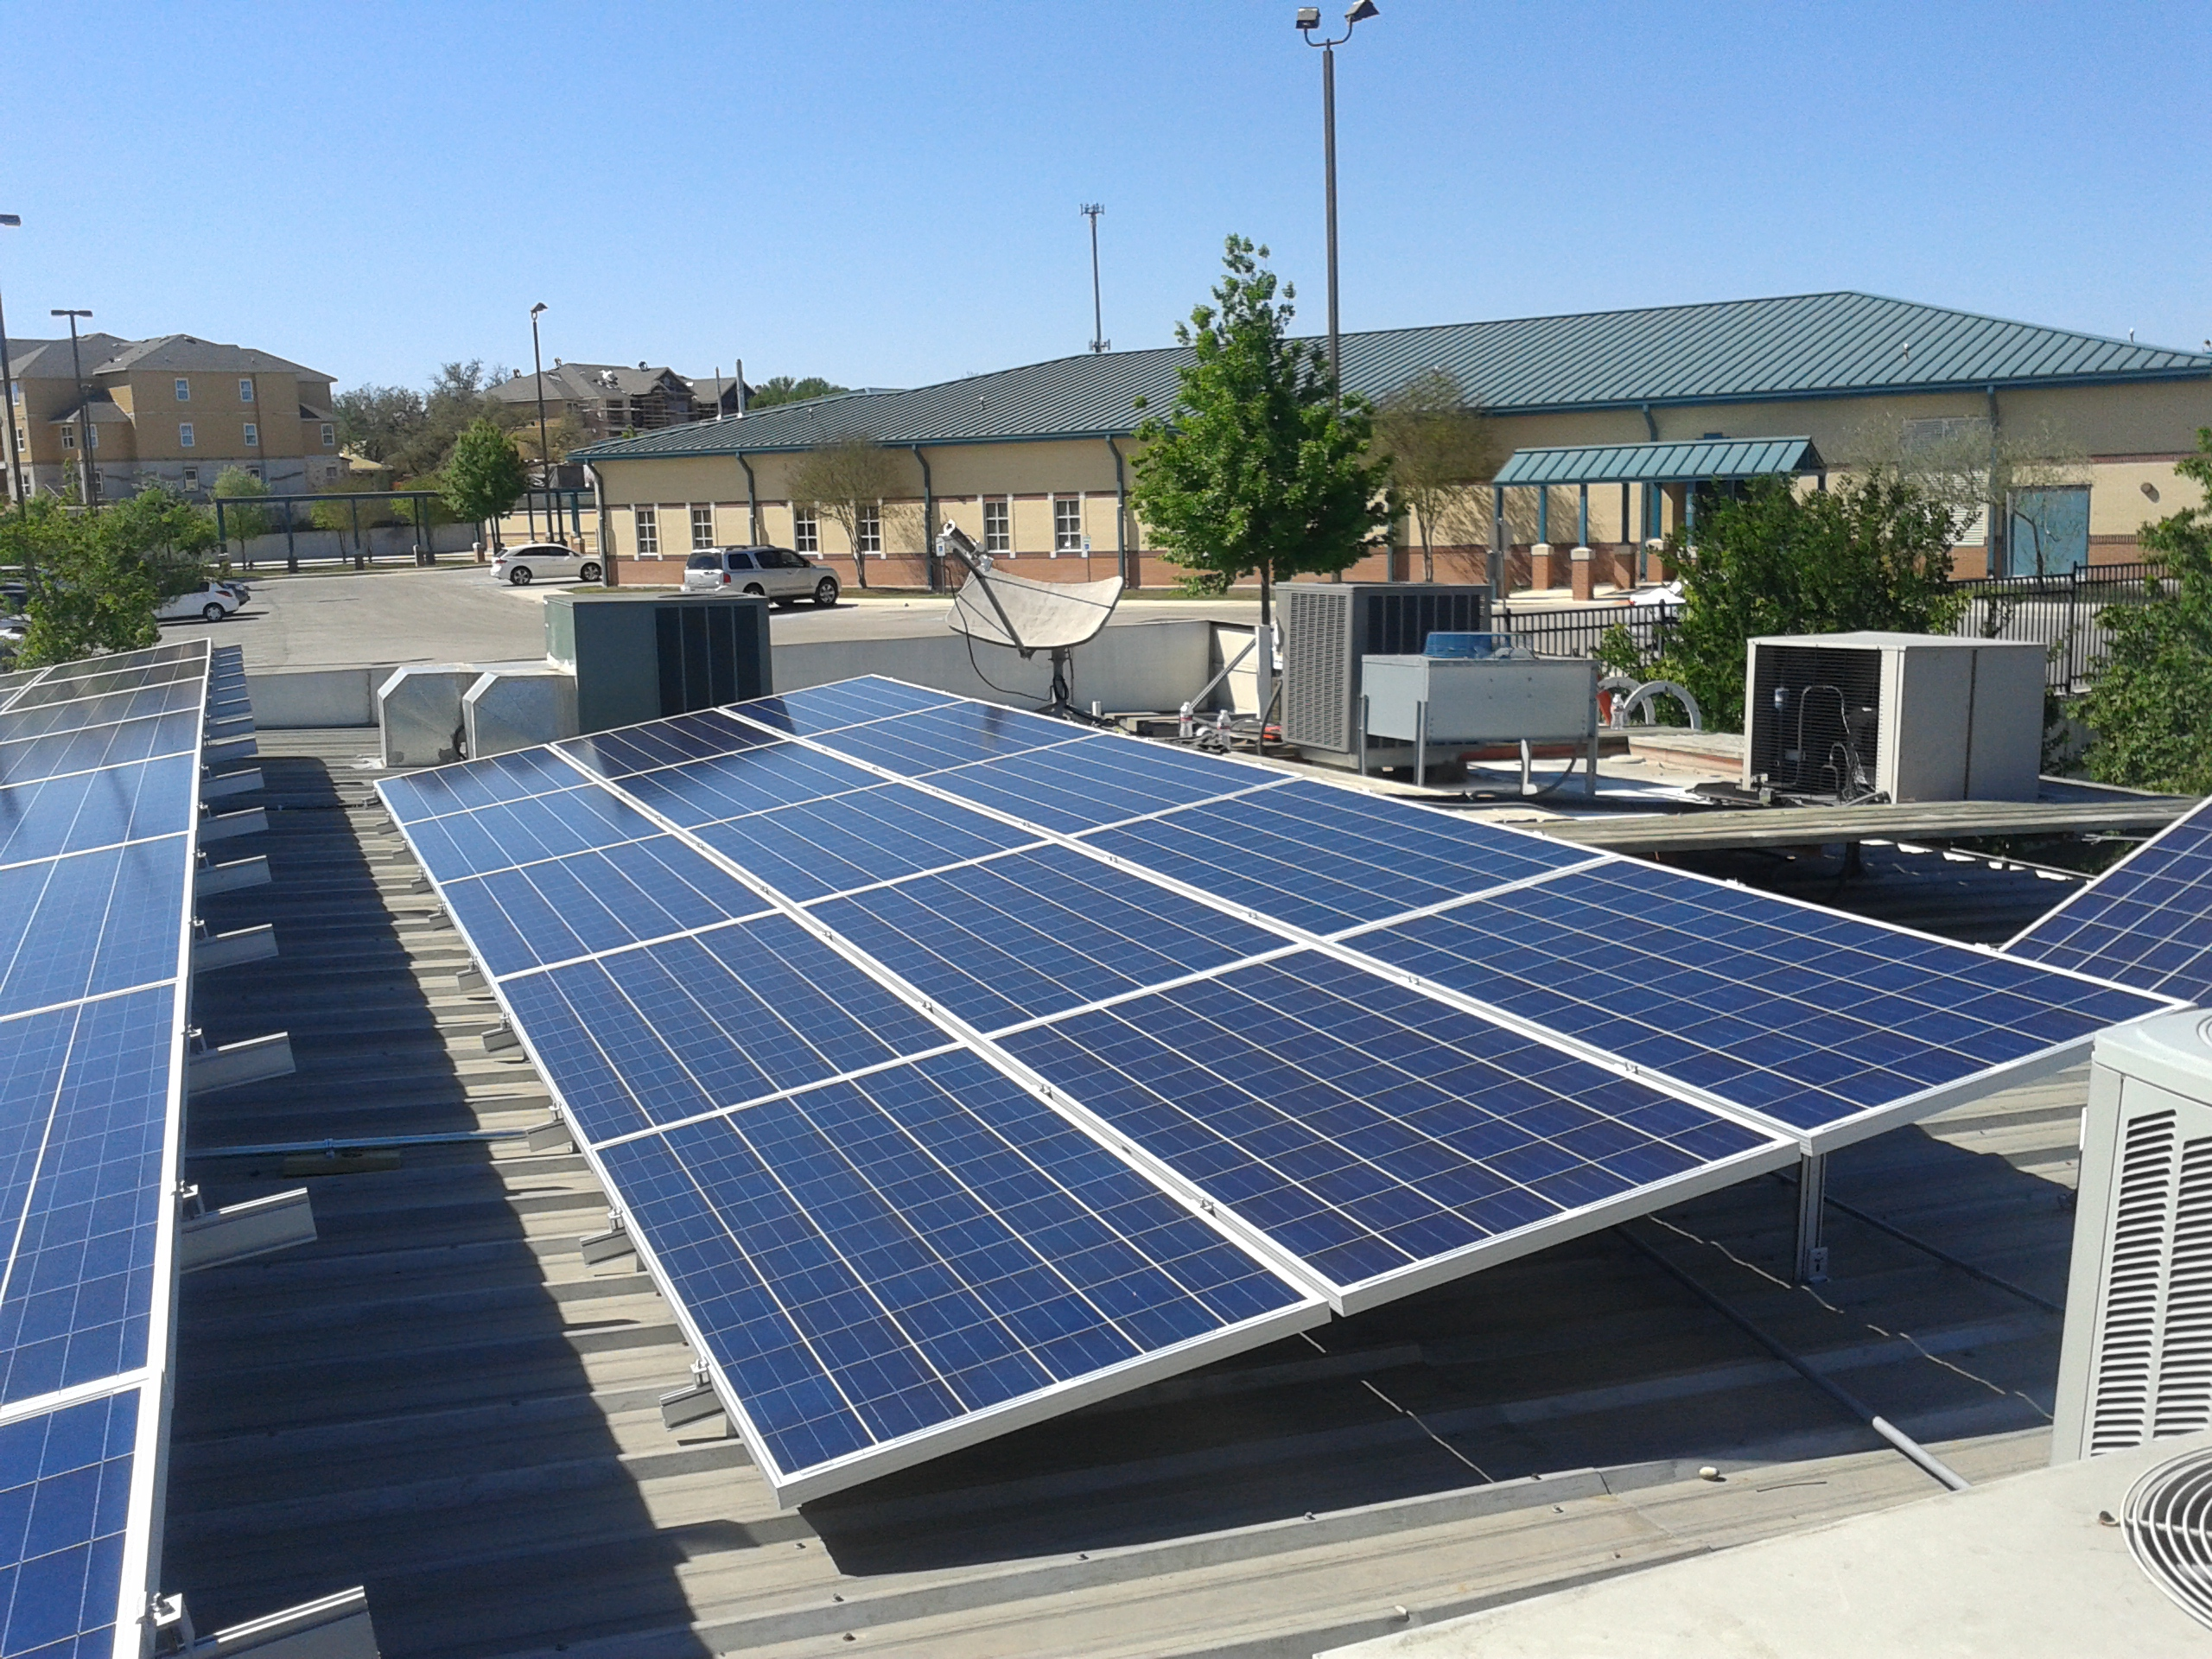 commercial solar installs by advanced solar & electric llc underground solar panel wiring homeadvisor screened & approved